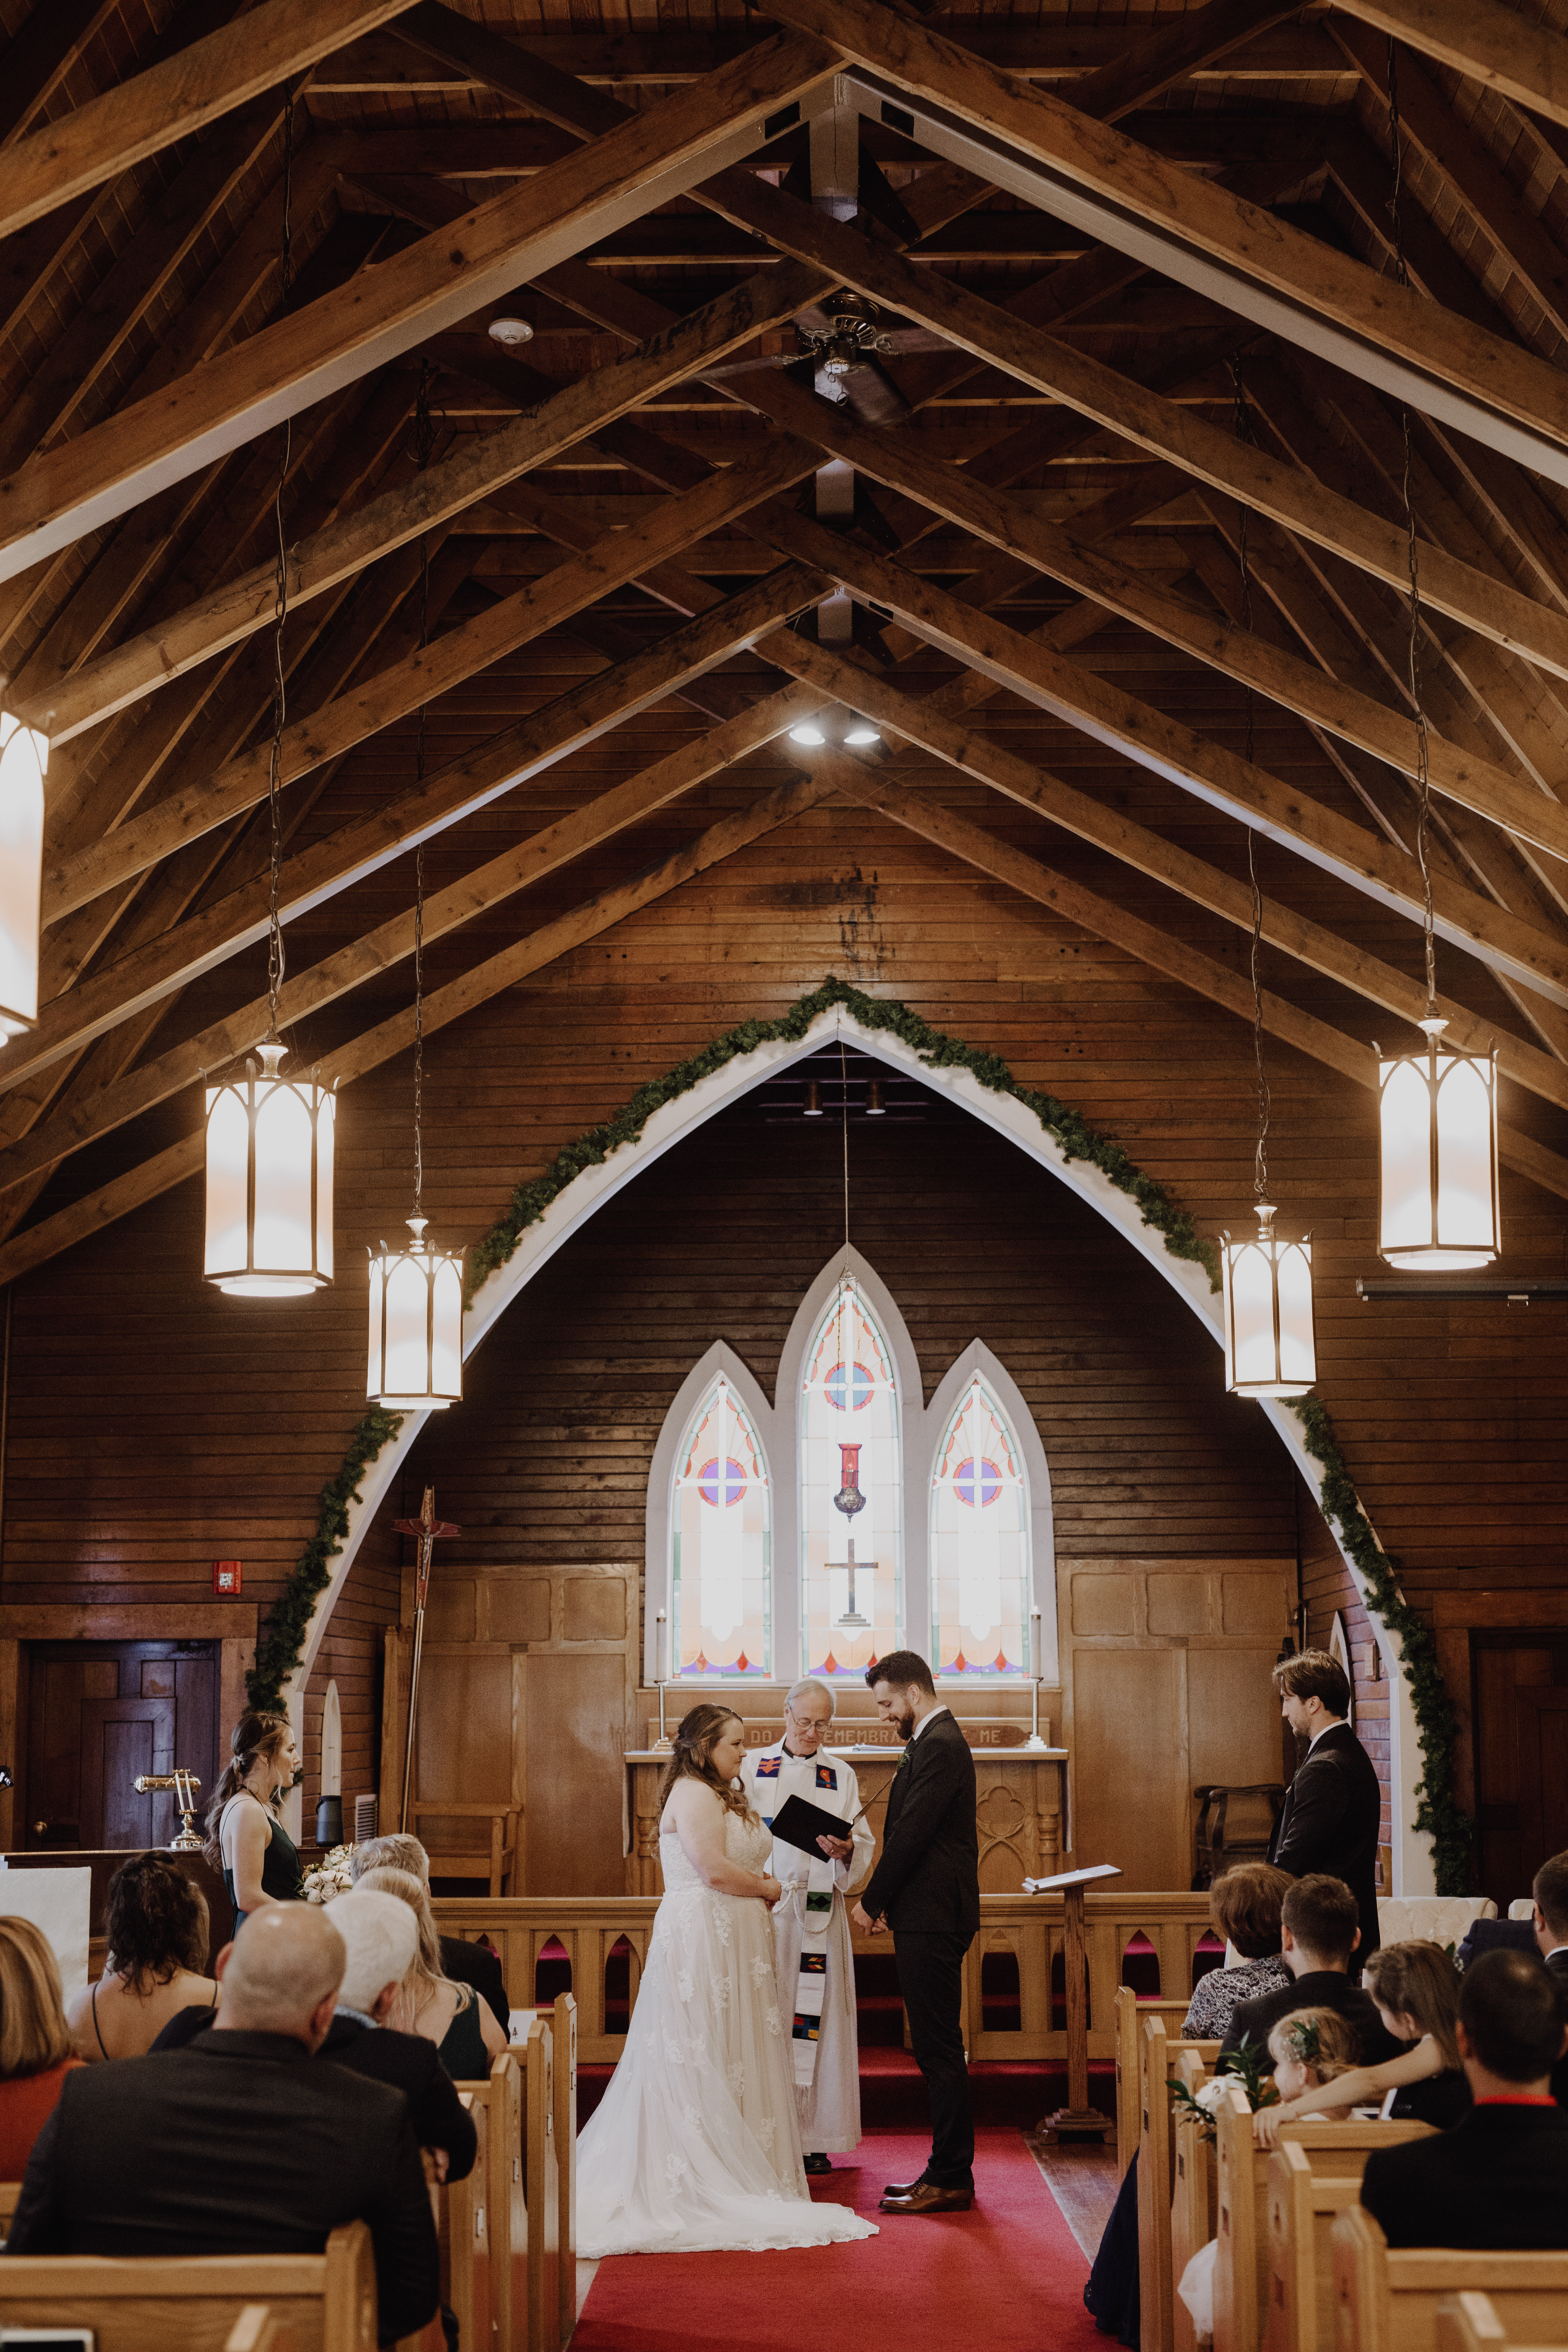 Banff Wedding - exchanging vows